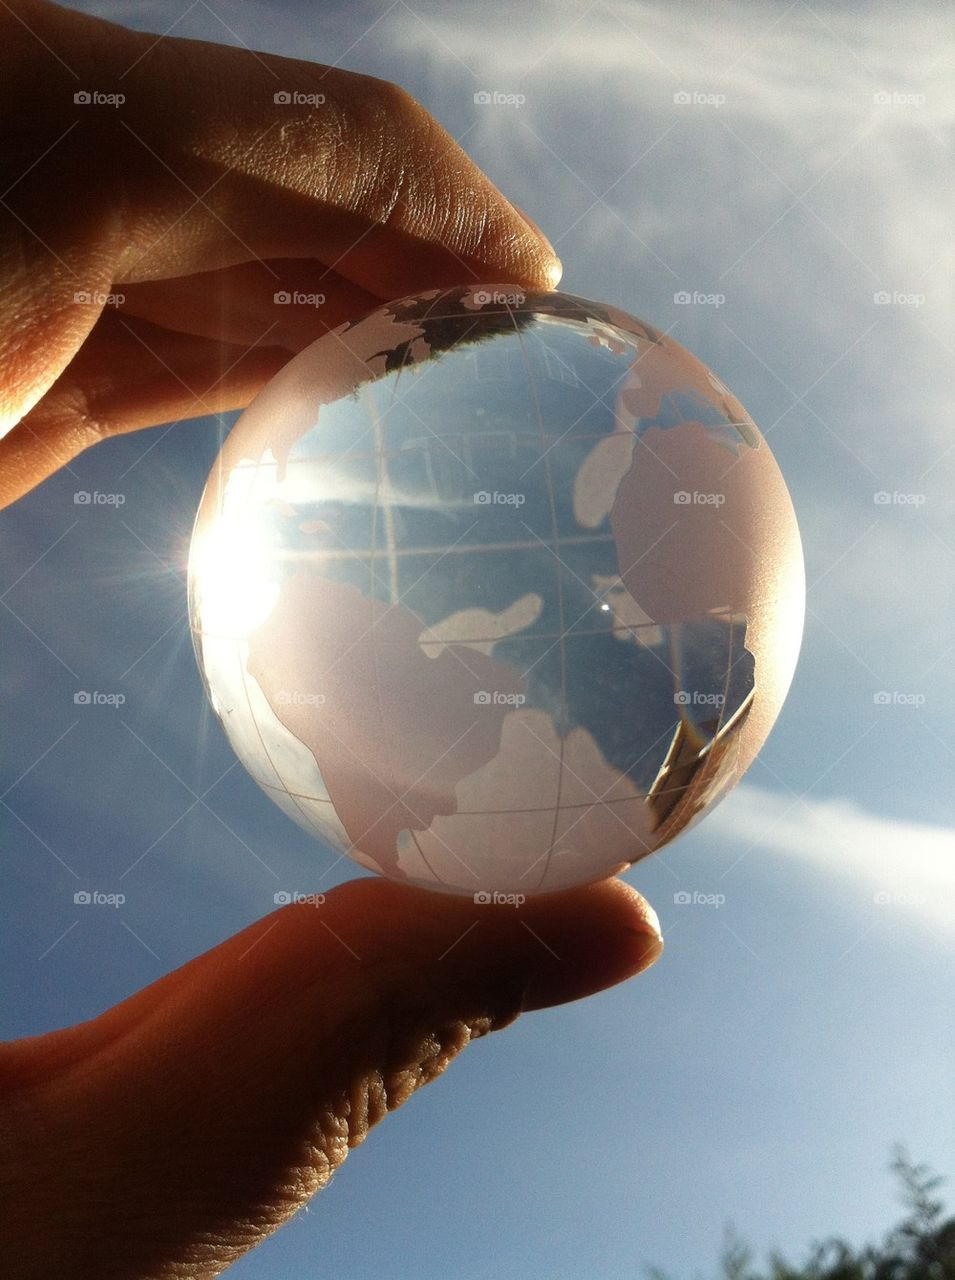 Close-up of person's hand holding glass globe